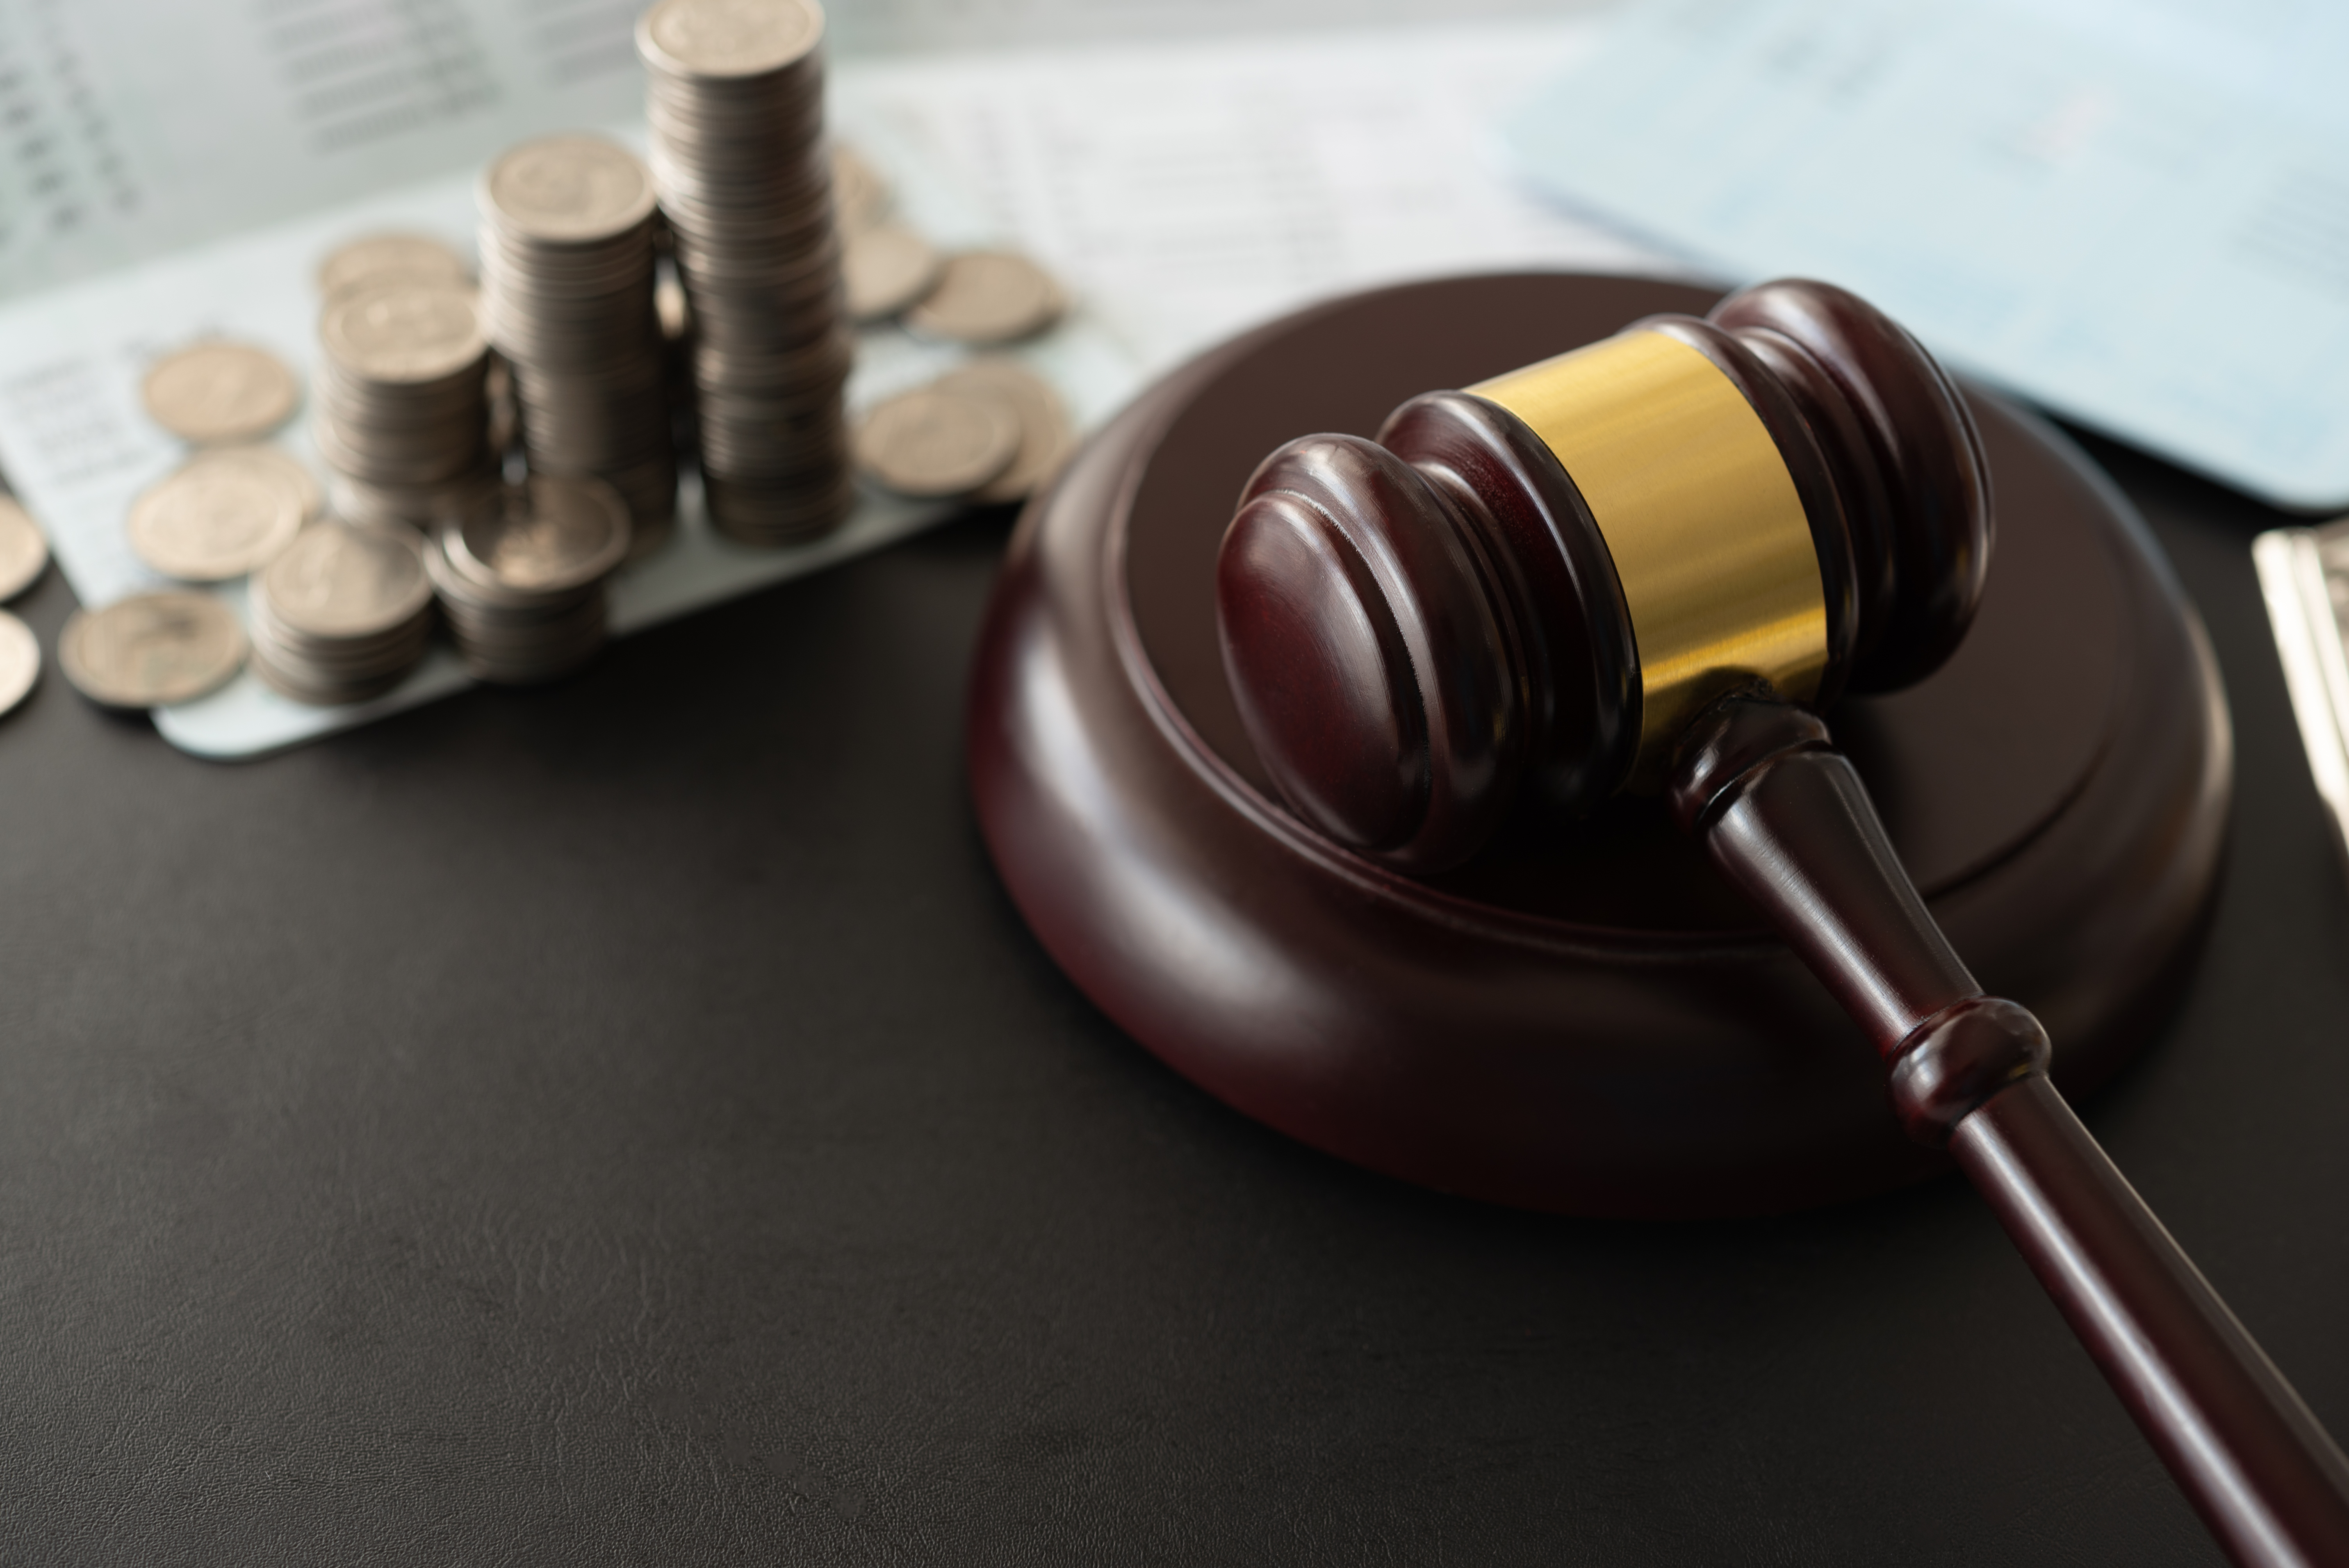 gavel judge with coin money and book bank accounts. banking money finance law.